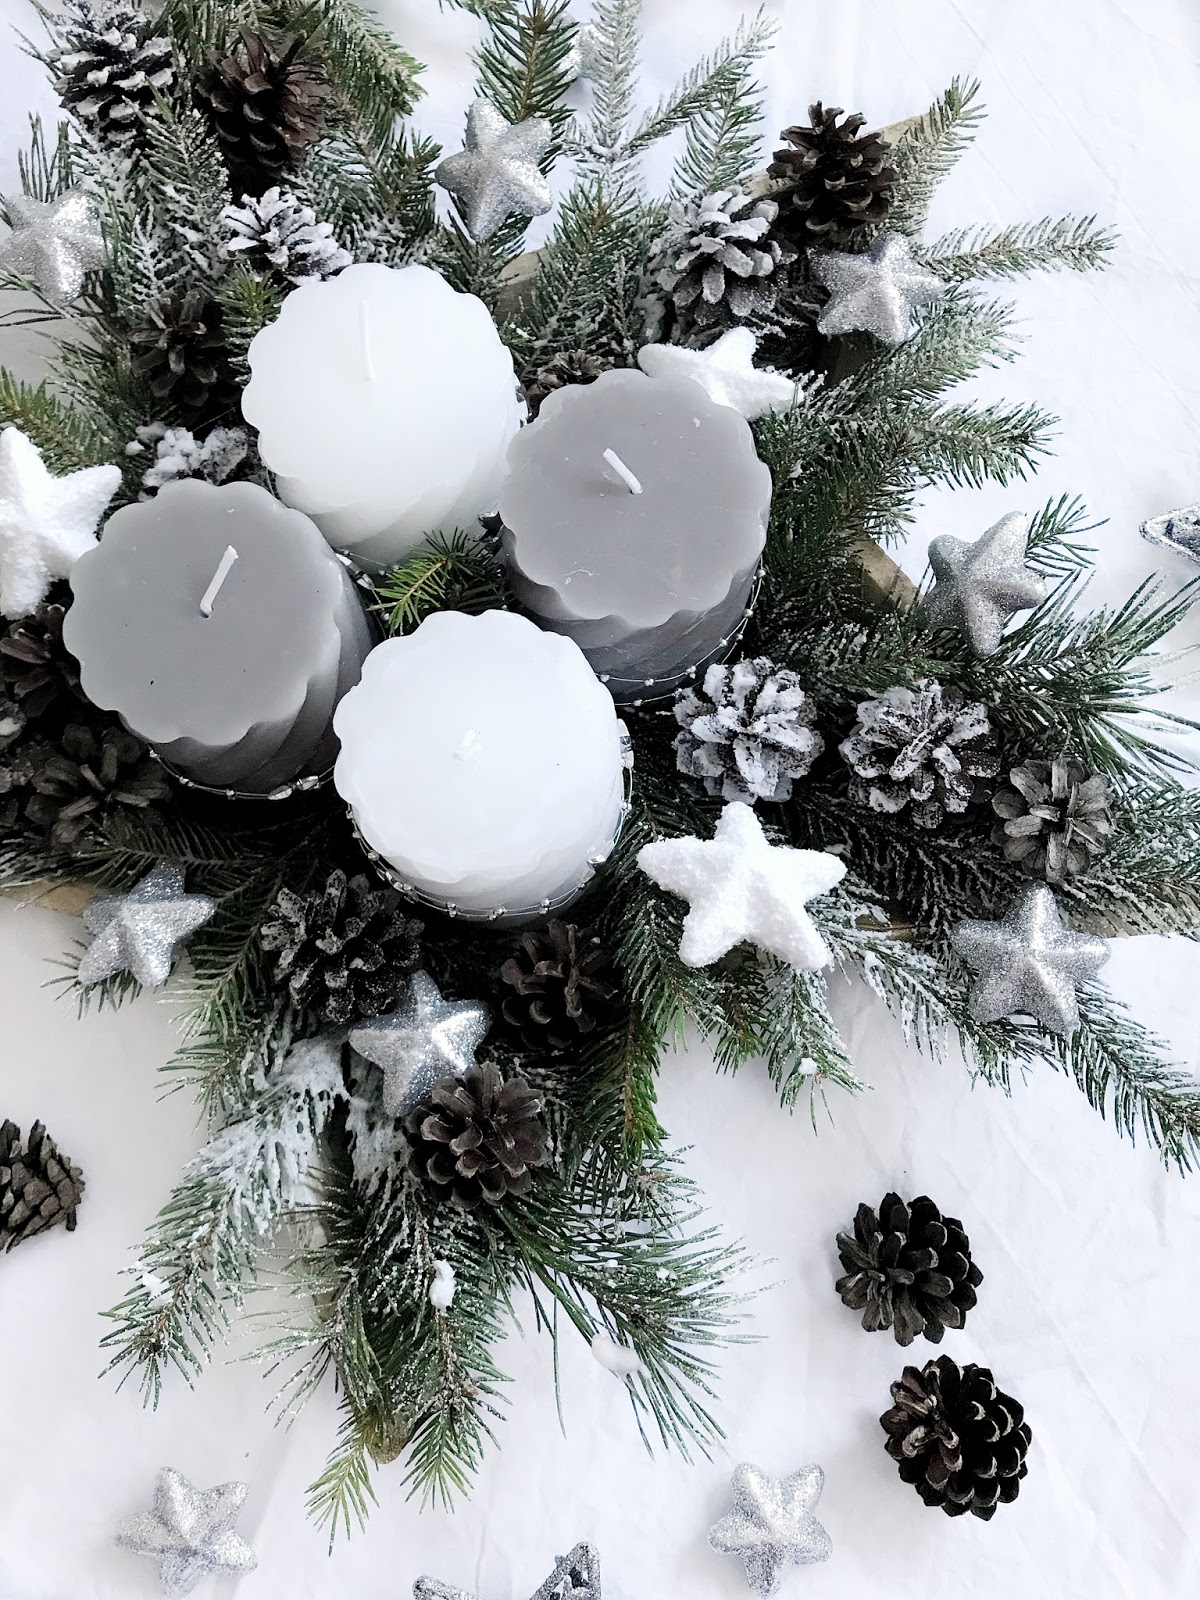 DIY advent wreath, DIY adventni venček, adventskkranz